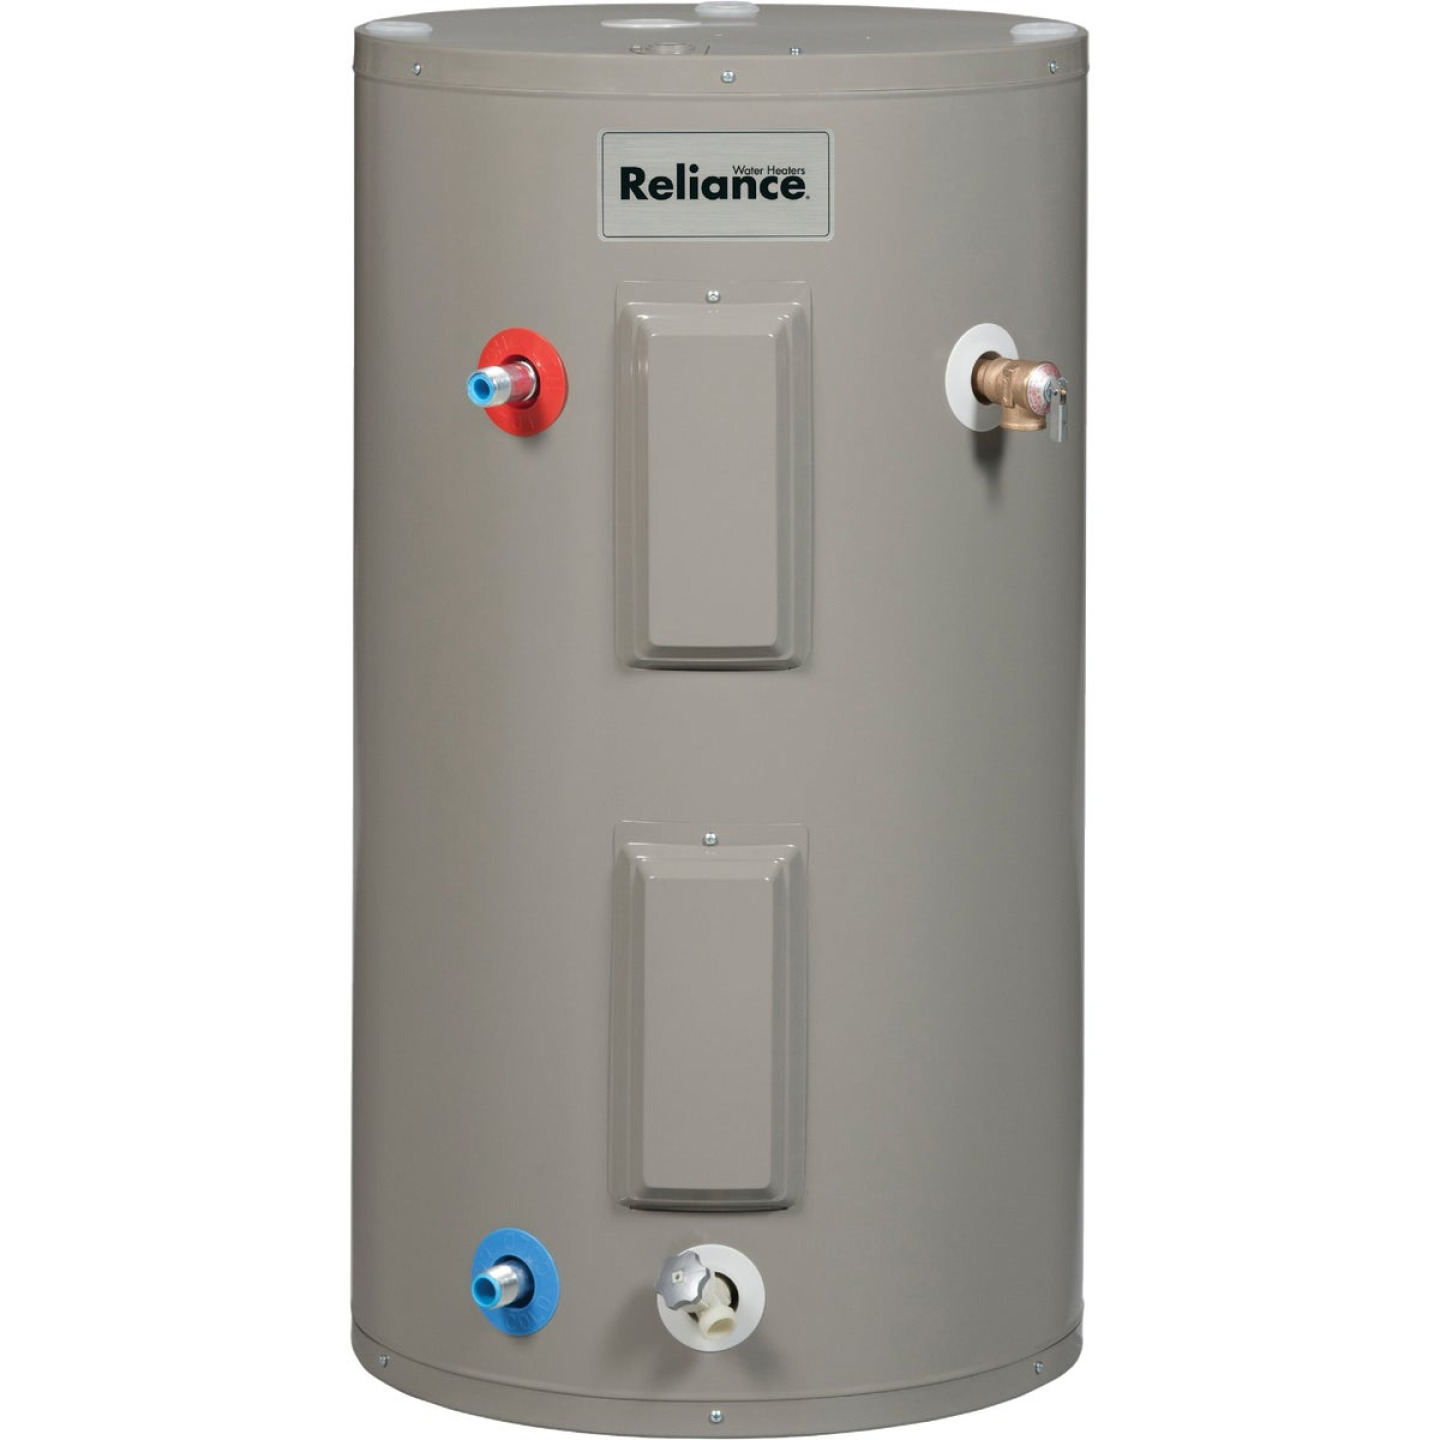 Reliance 40 Gal. 6yr 3800/3800W Element Electric Water Heater for Mobile Home Image 1